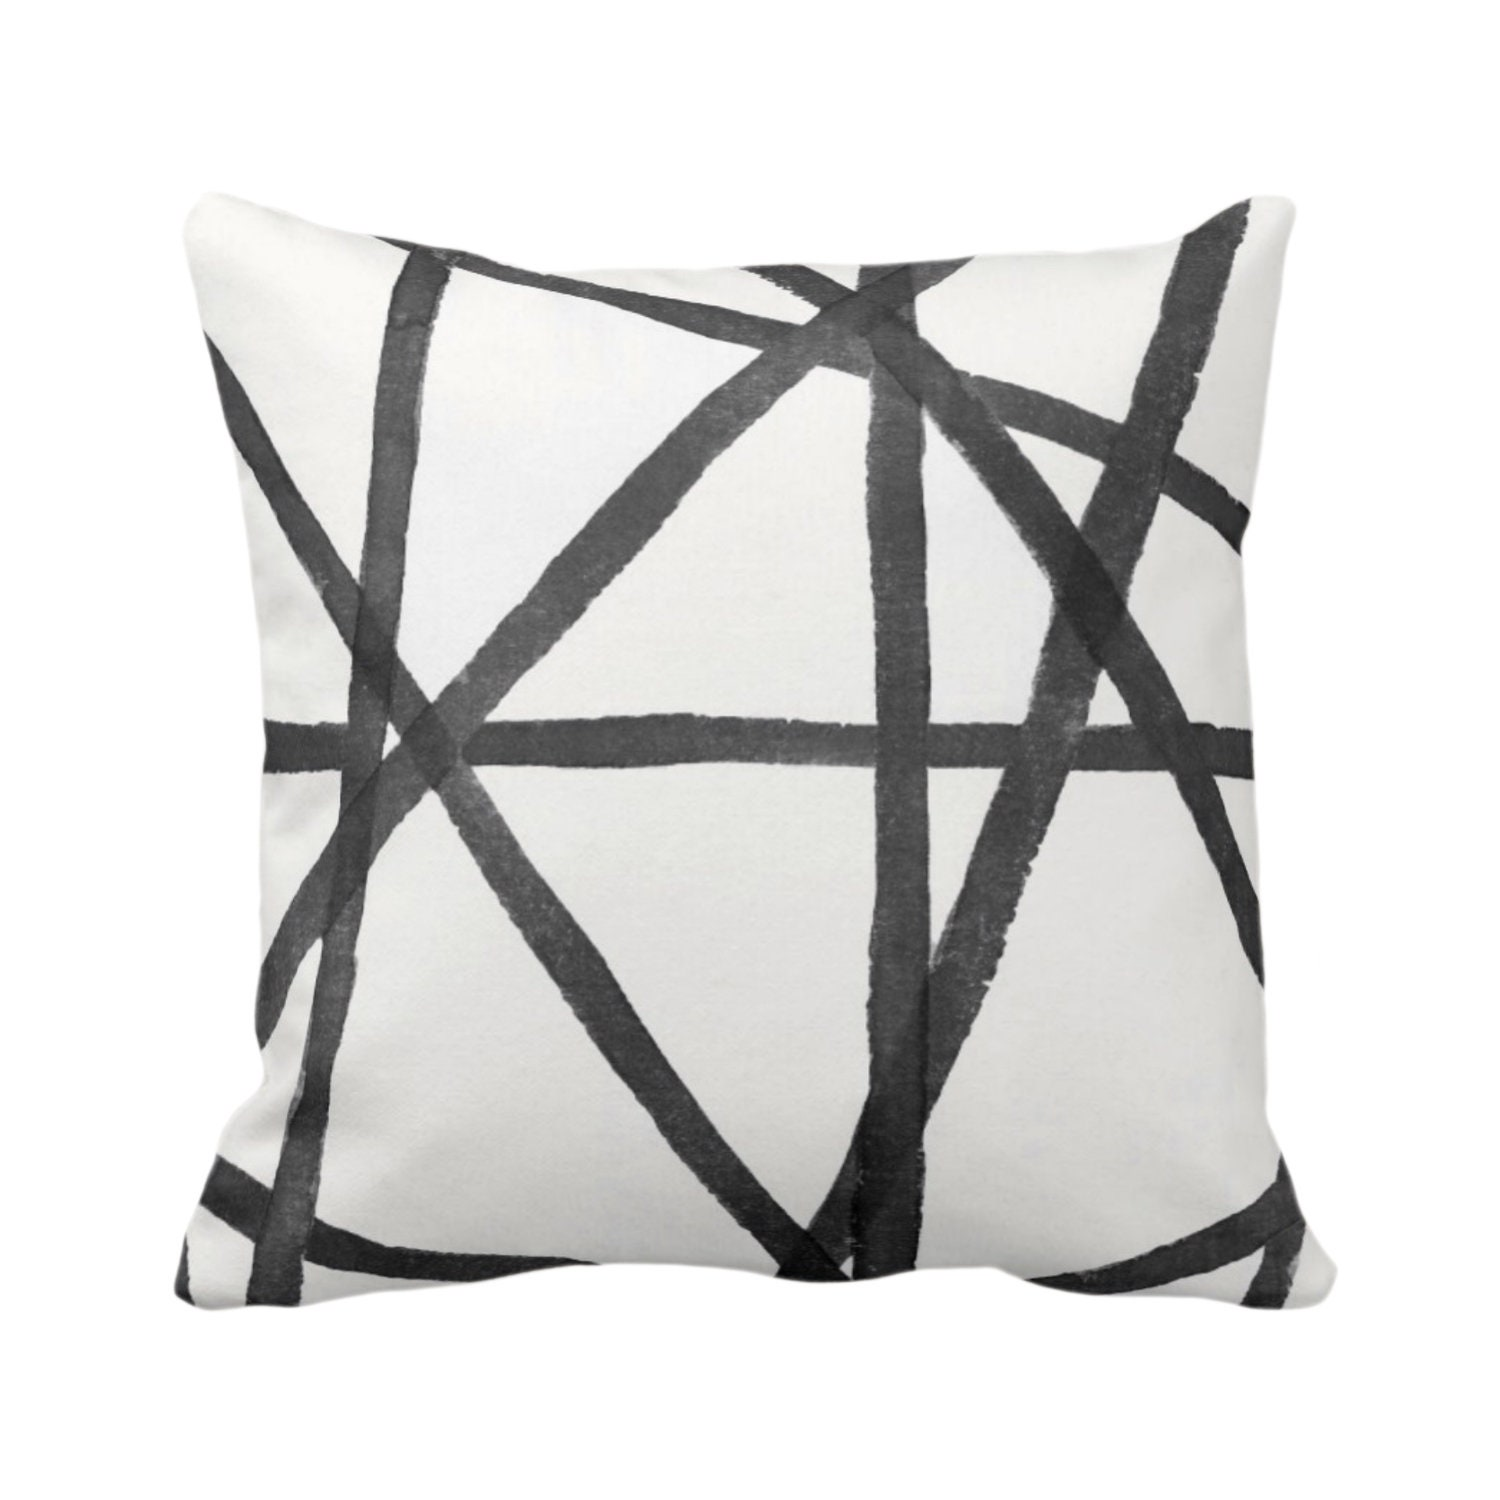 OUTDOOR Hand-Painted Lines Throw Pillow or Cover, Charcoal